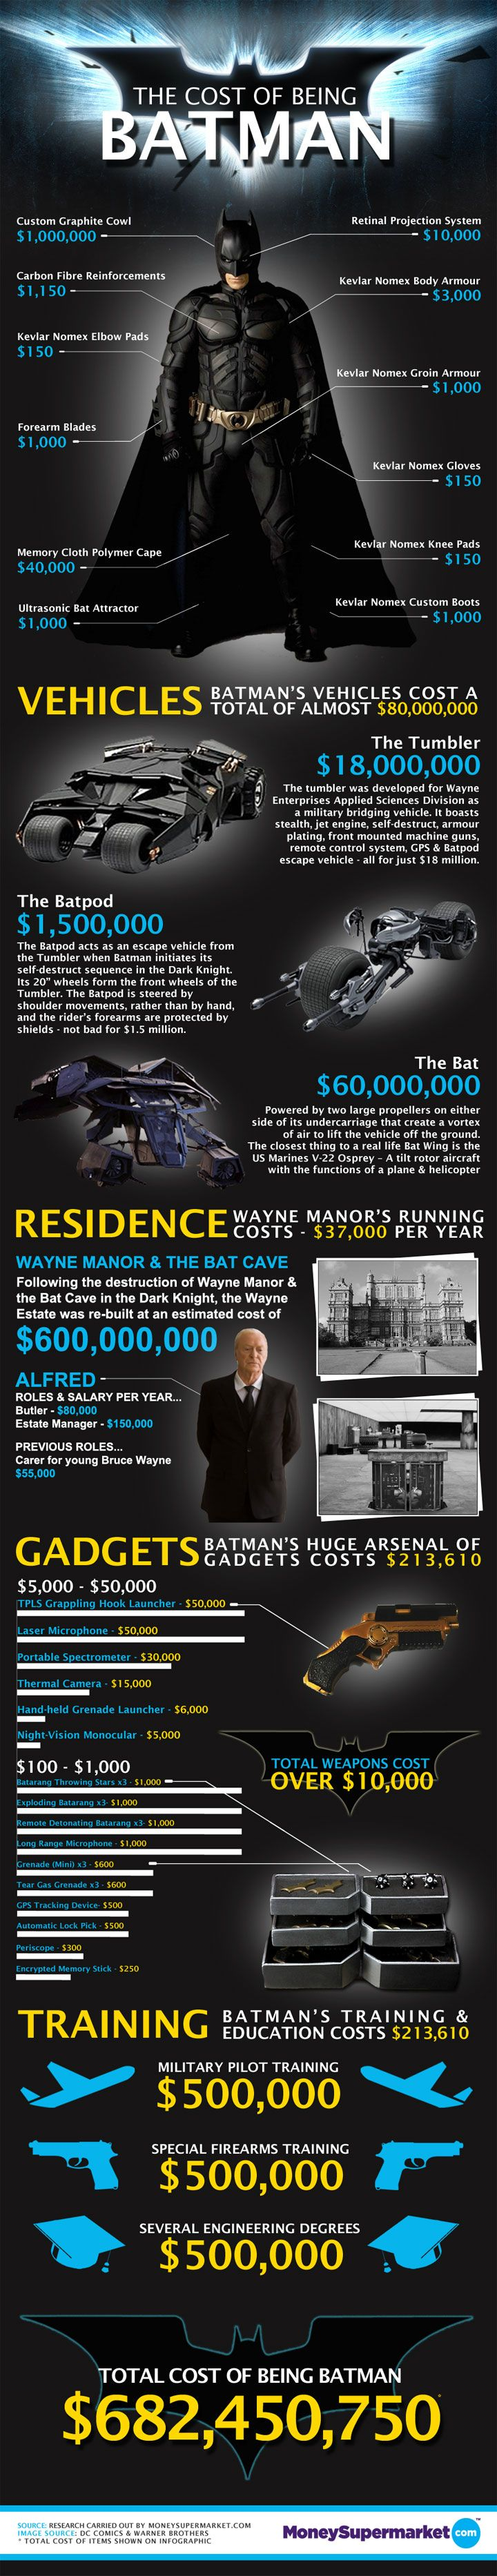 The Dark Knight Rises in 20 Infographics